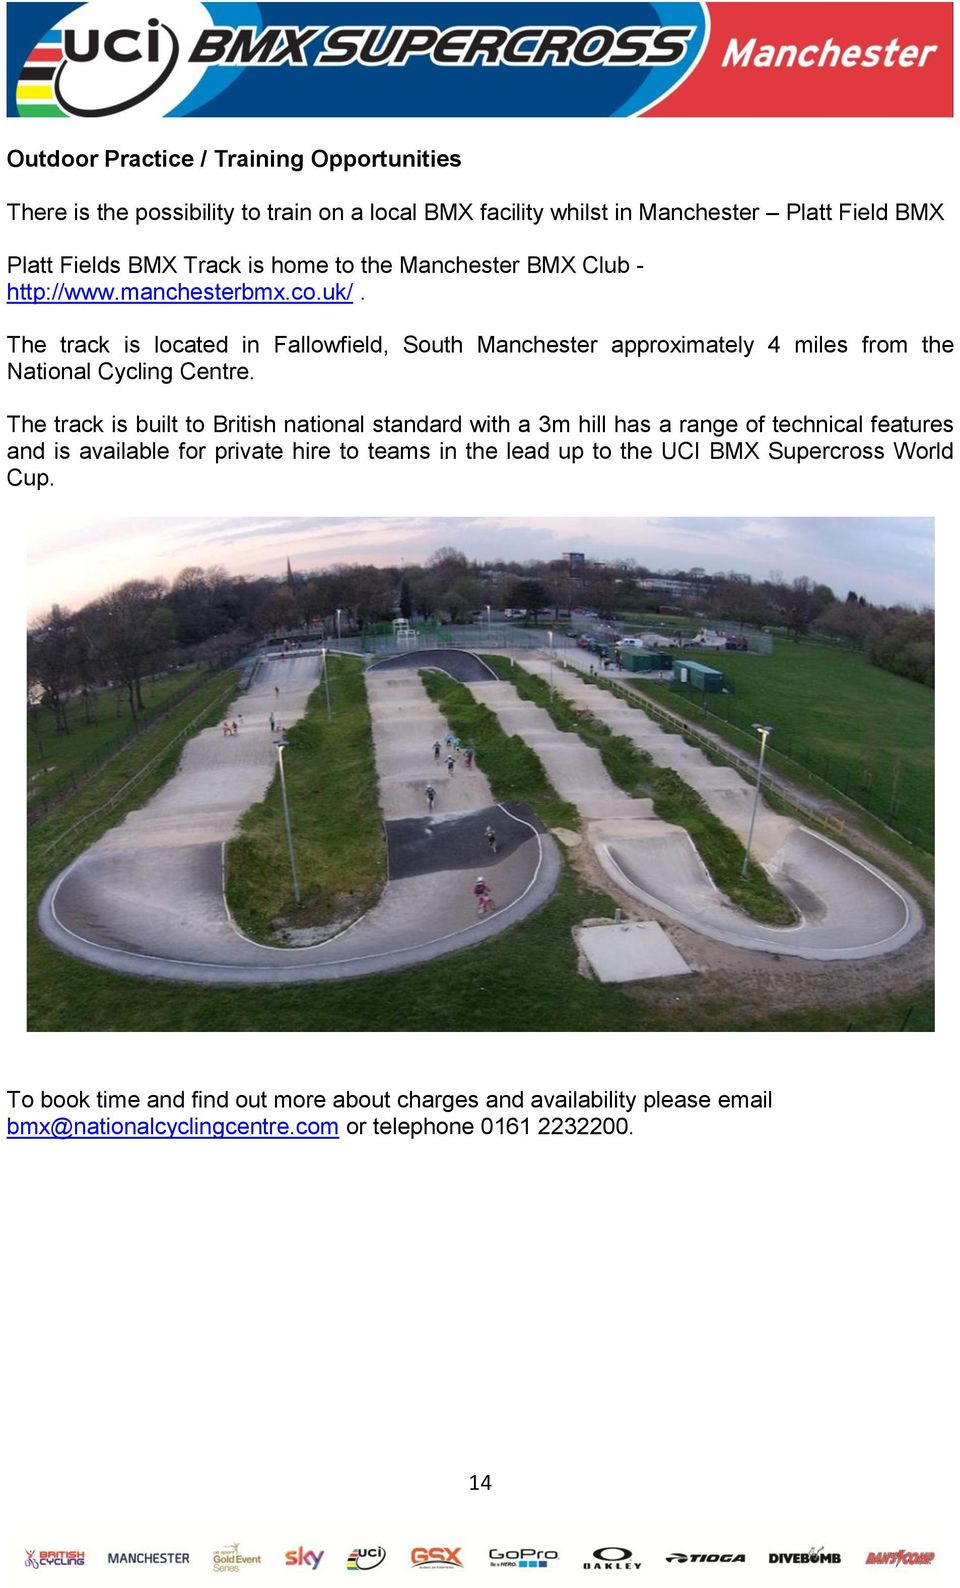 The track is located in Fallowfield, South Manchester approximately 4 miles from the National Cycling Centre.